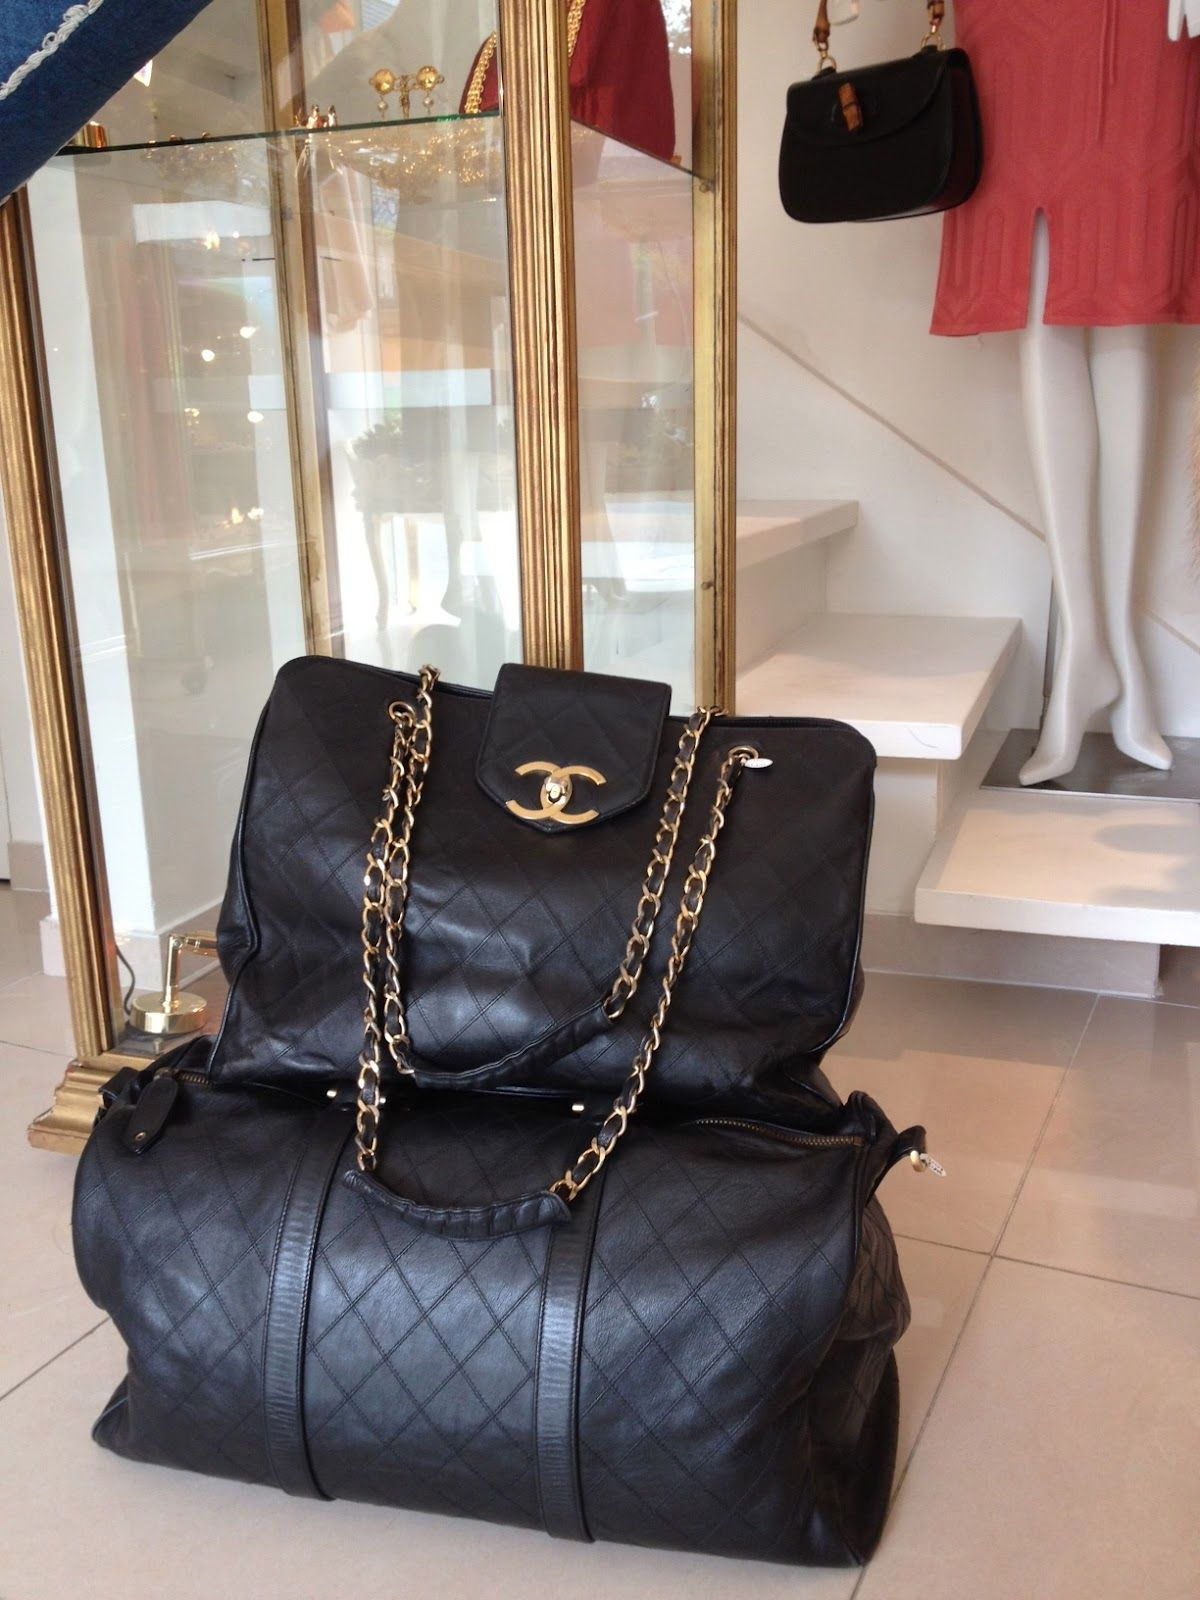 00deb4764b31 CHANEL SUPERMODEL TOTE   BOSTON DUFFLE BAG-been to this consignment shop in  The Marais and they have amazing stuff. It s called Yukiko on 97 Rue de  Vielle ...